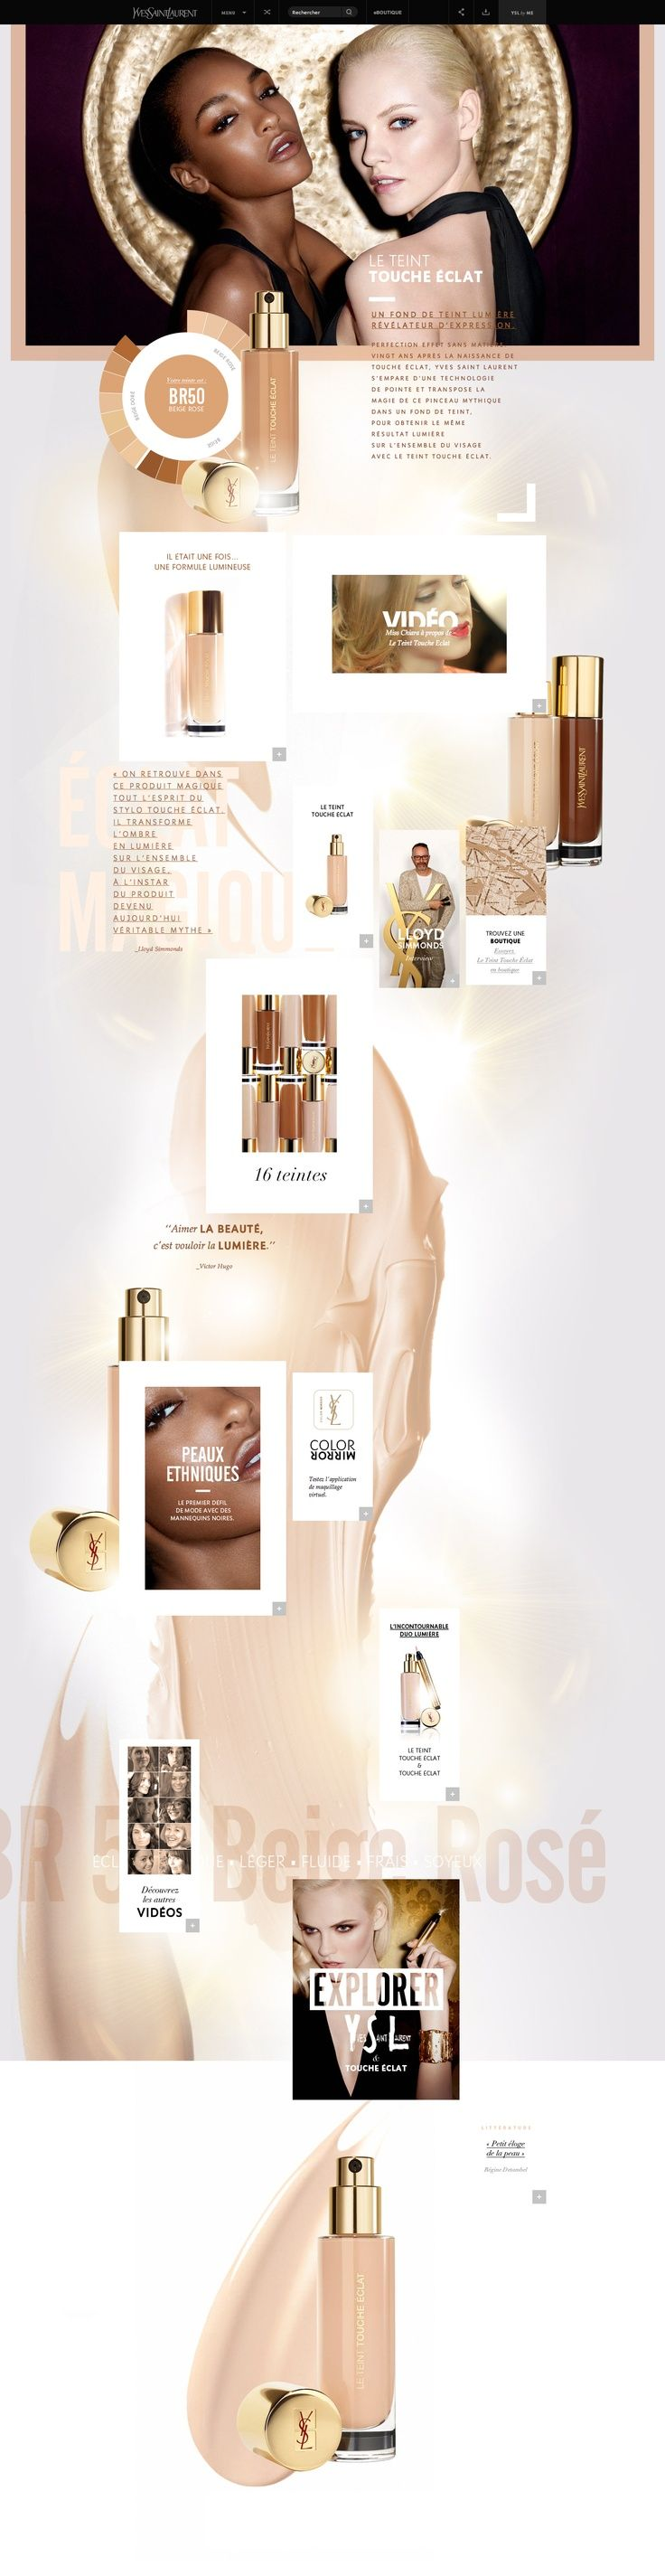 Interesting approach to fashion/cosmetic industry on the web.